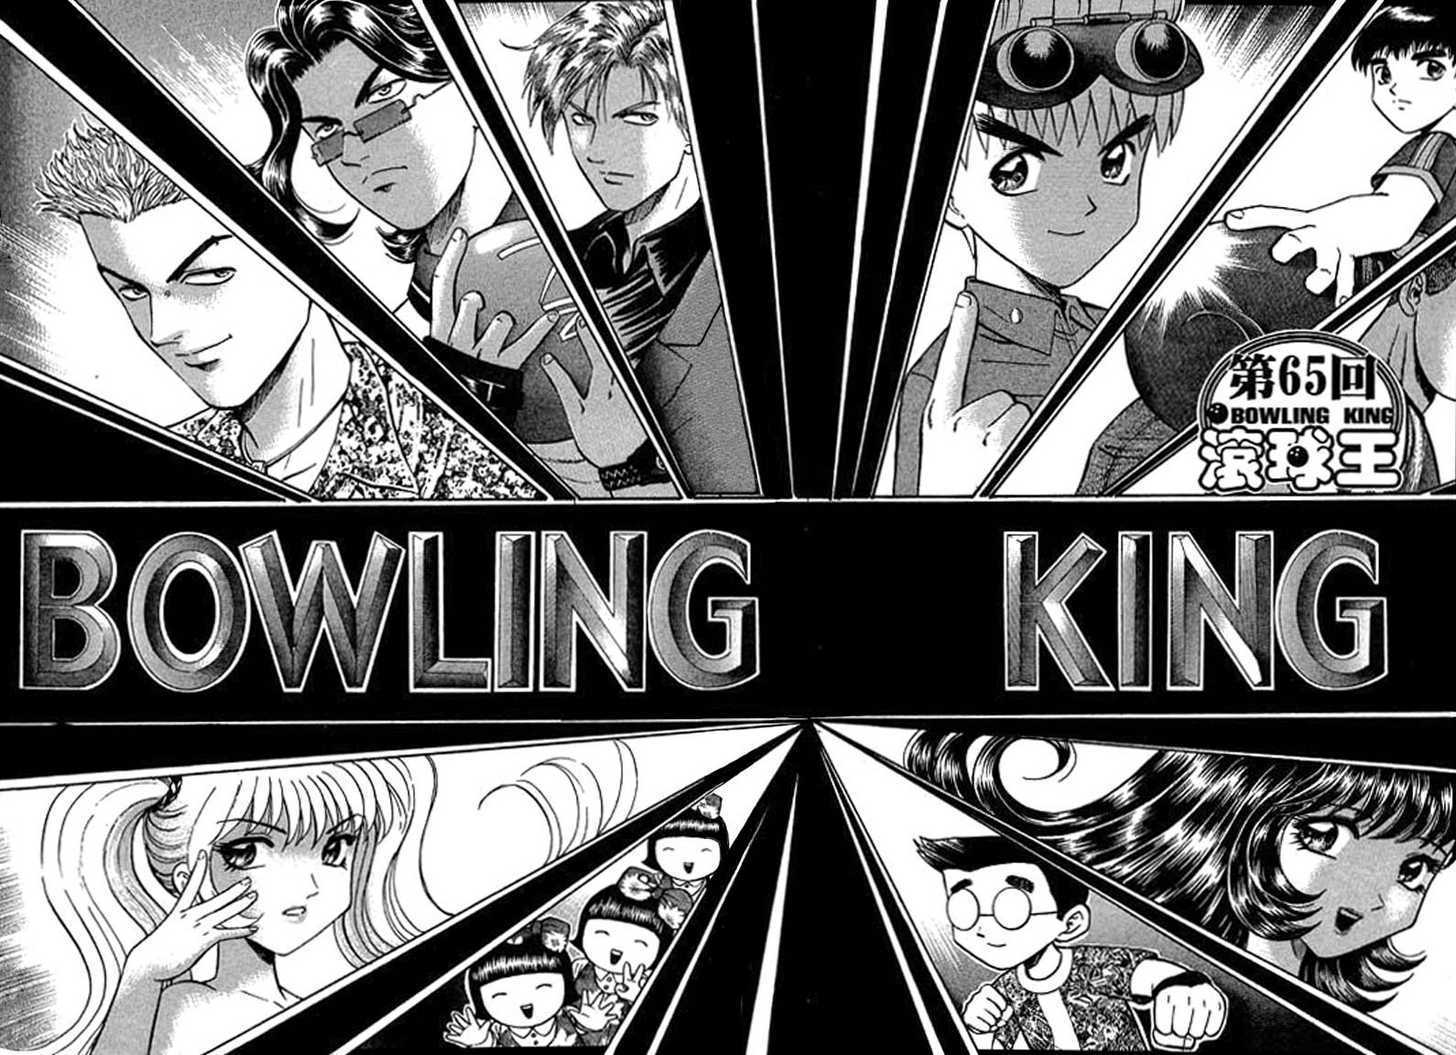 Bowling King 65 Page 1